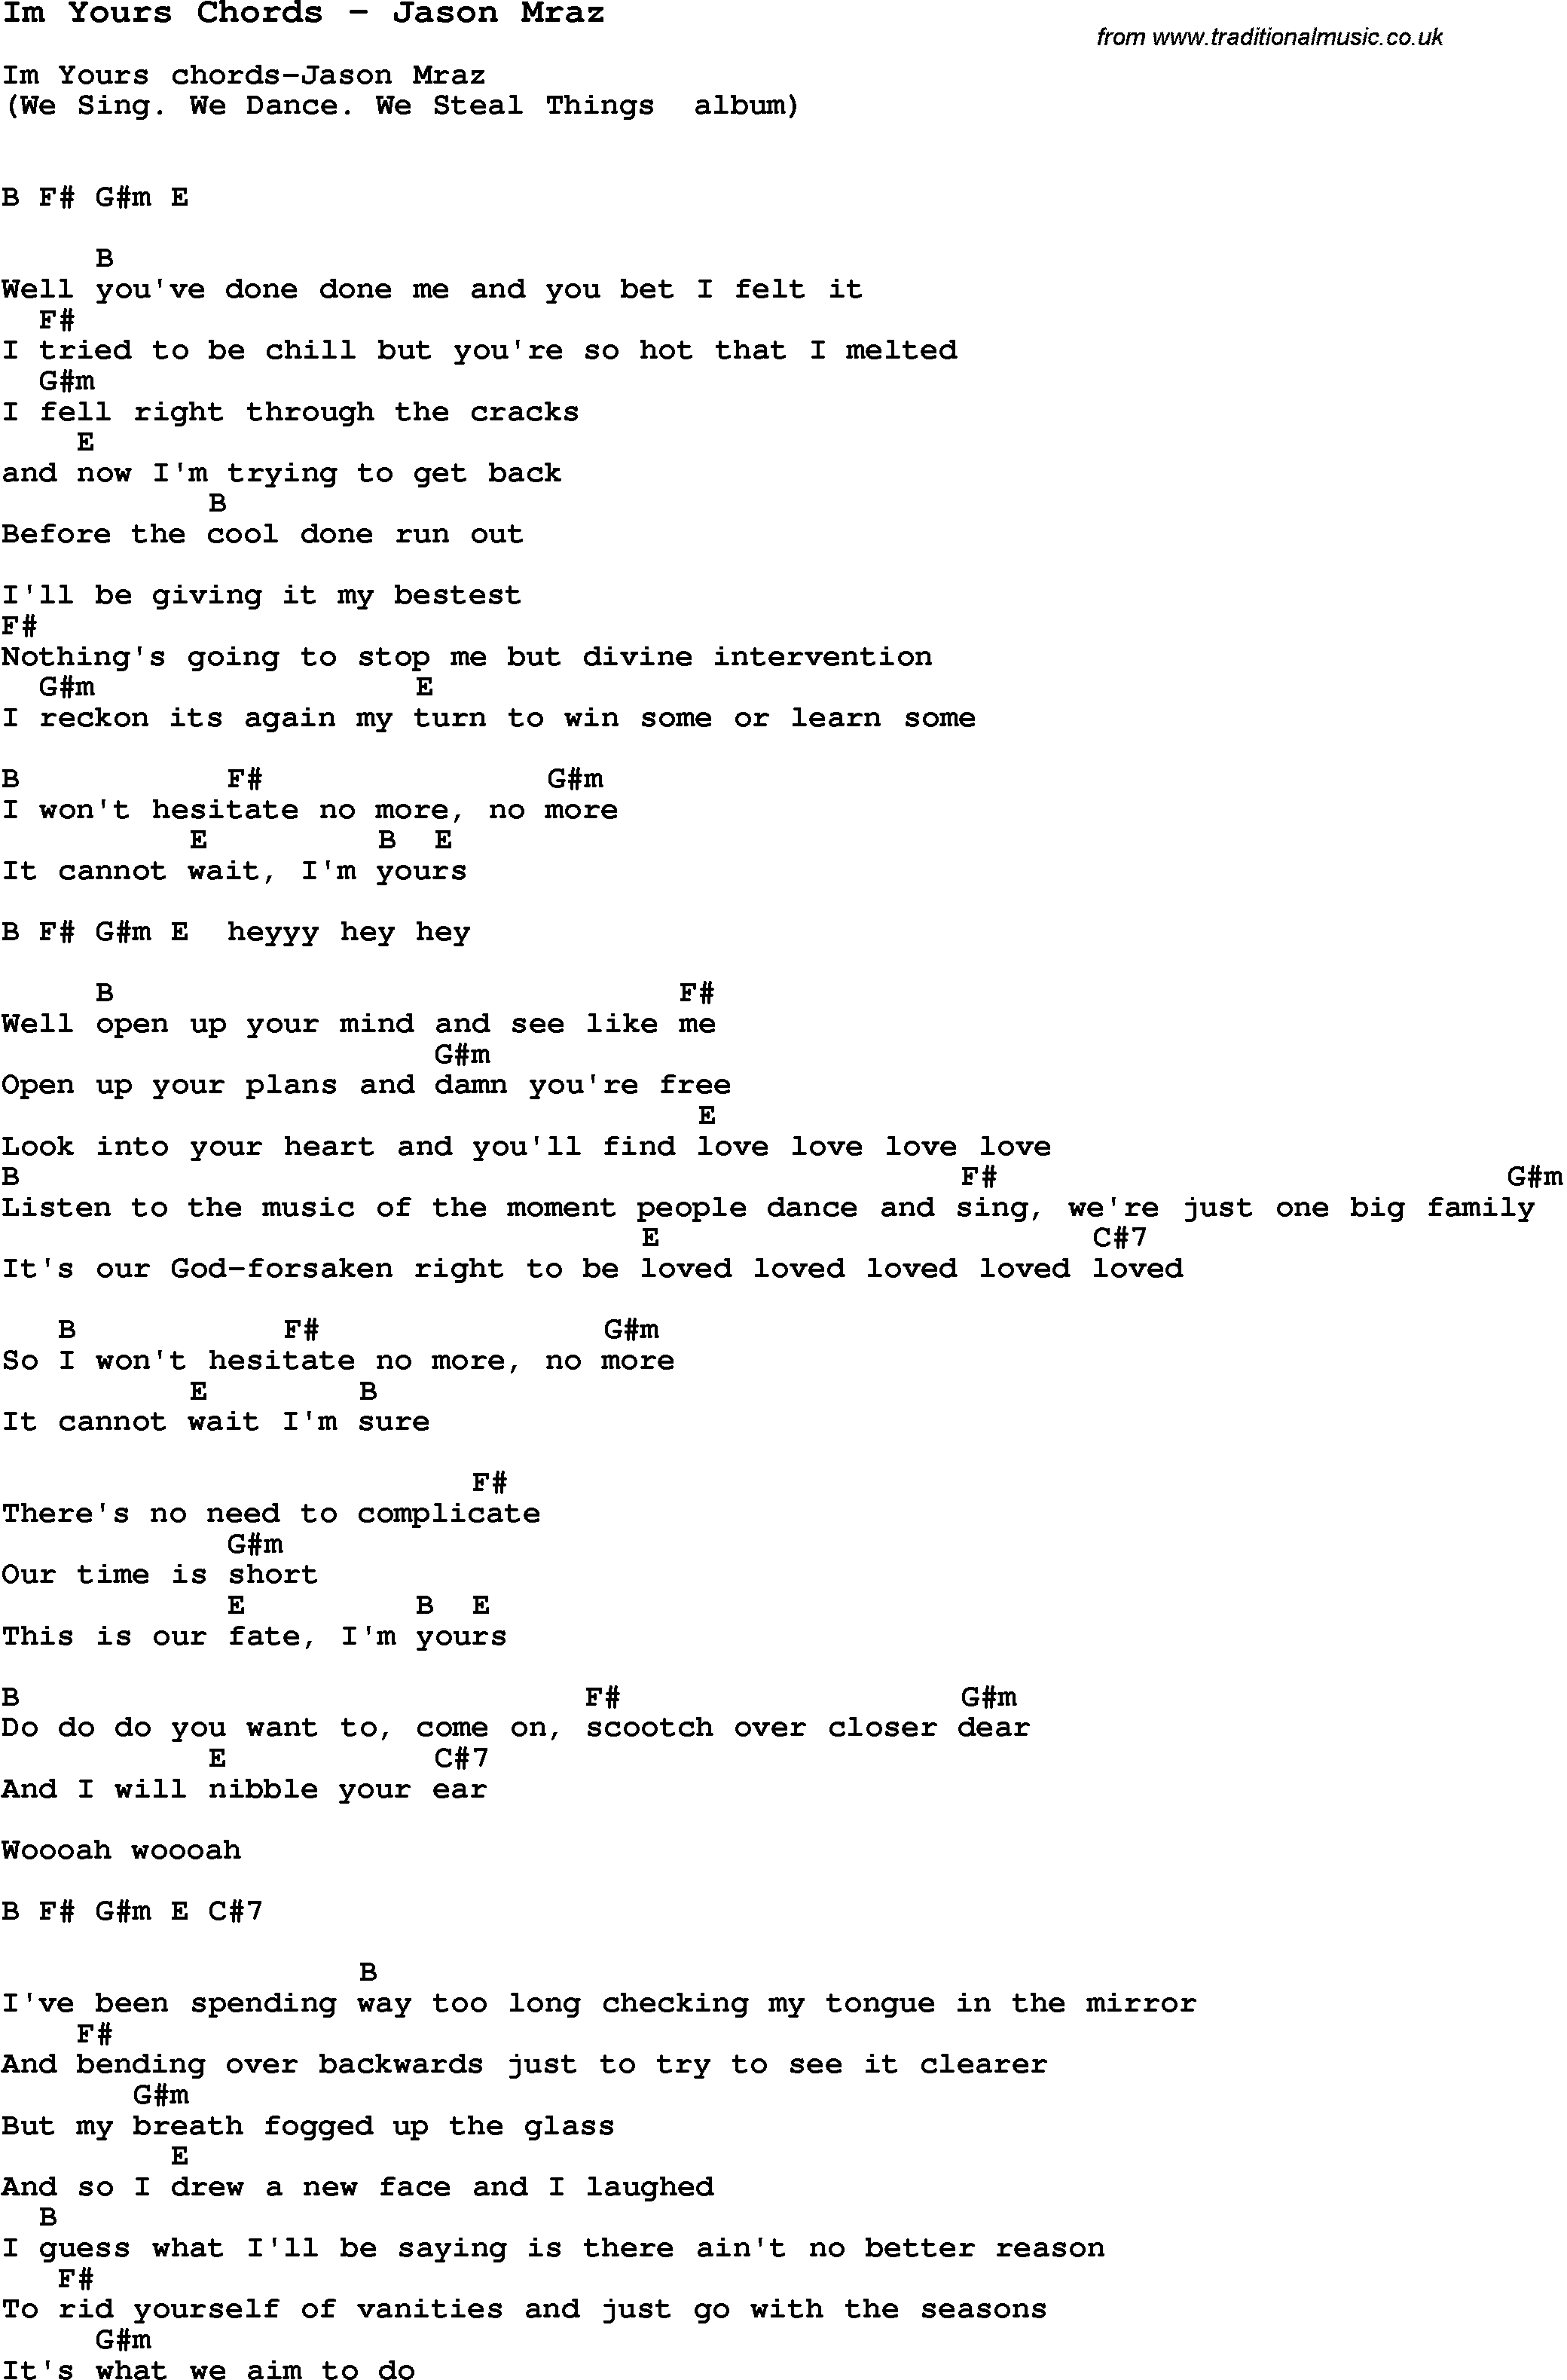 Im Yours Chords Song Im Yours Chords Jason Mraz Song Lyric For Vocal Performance